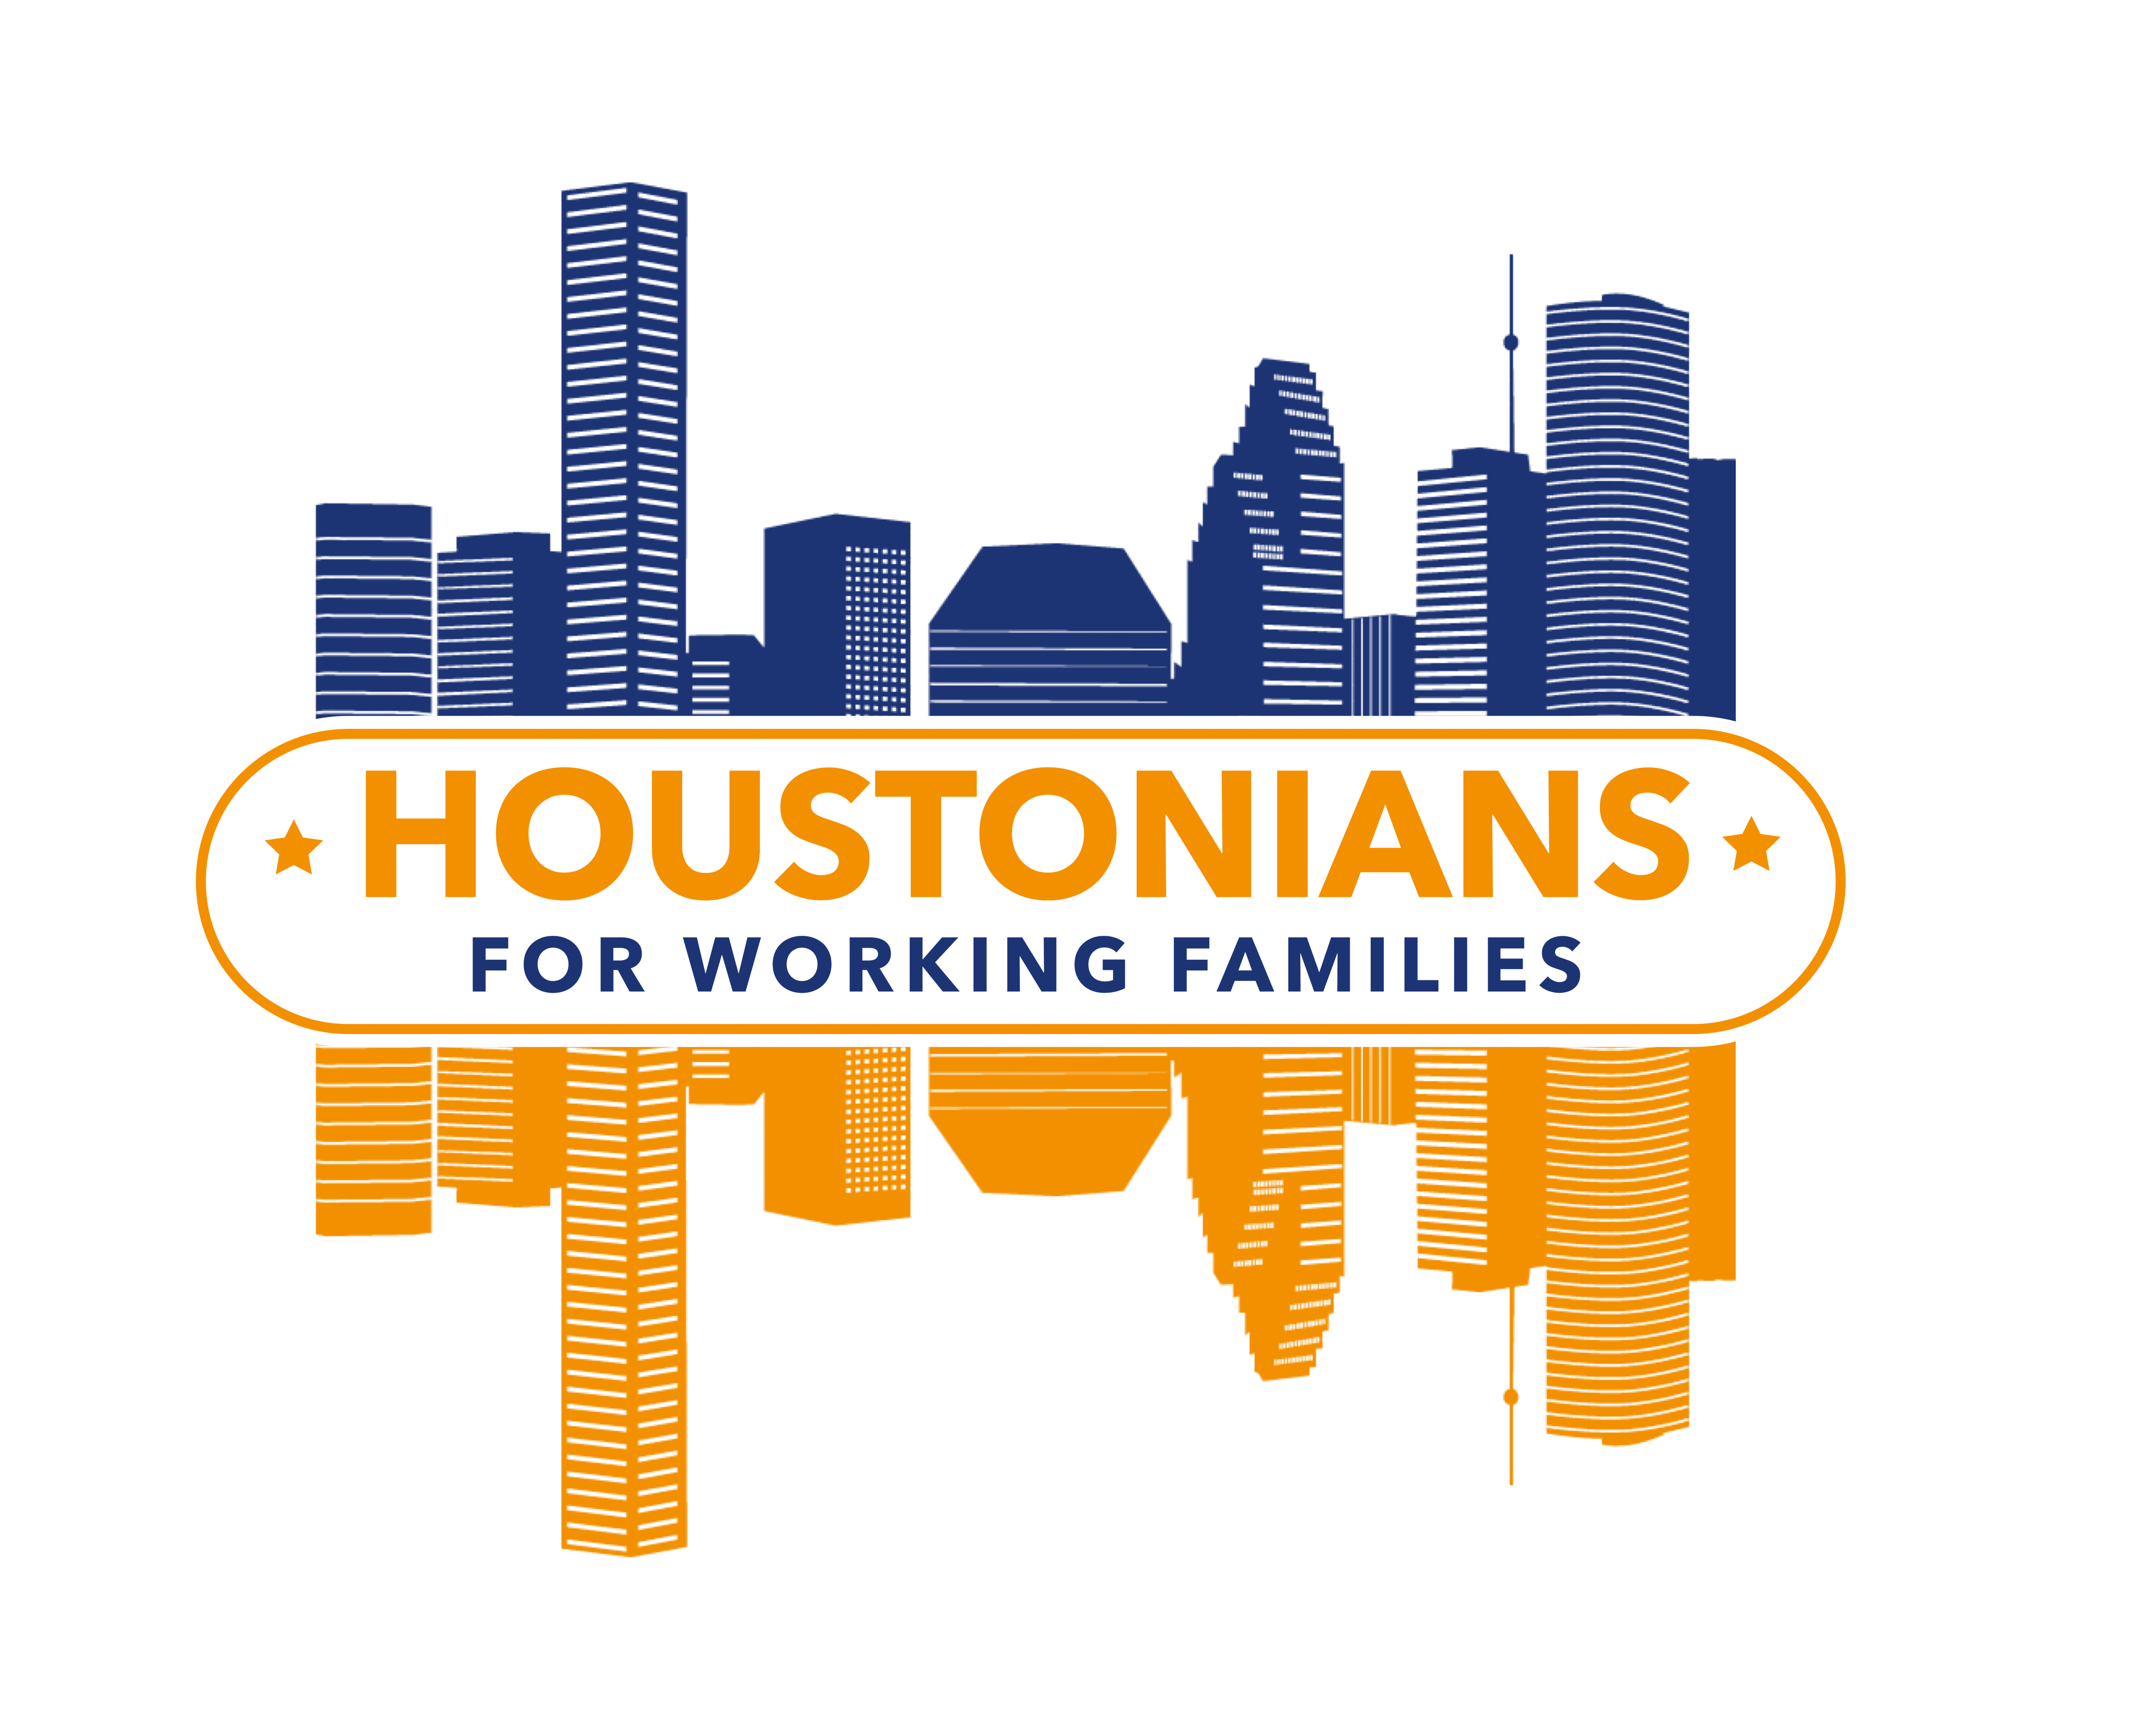 Houstonians for Working Families